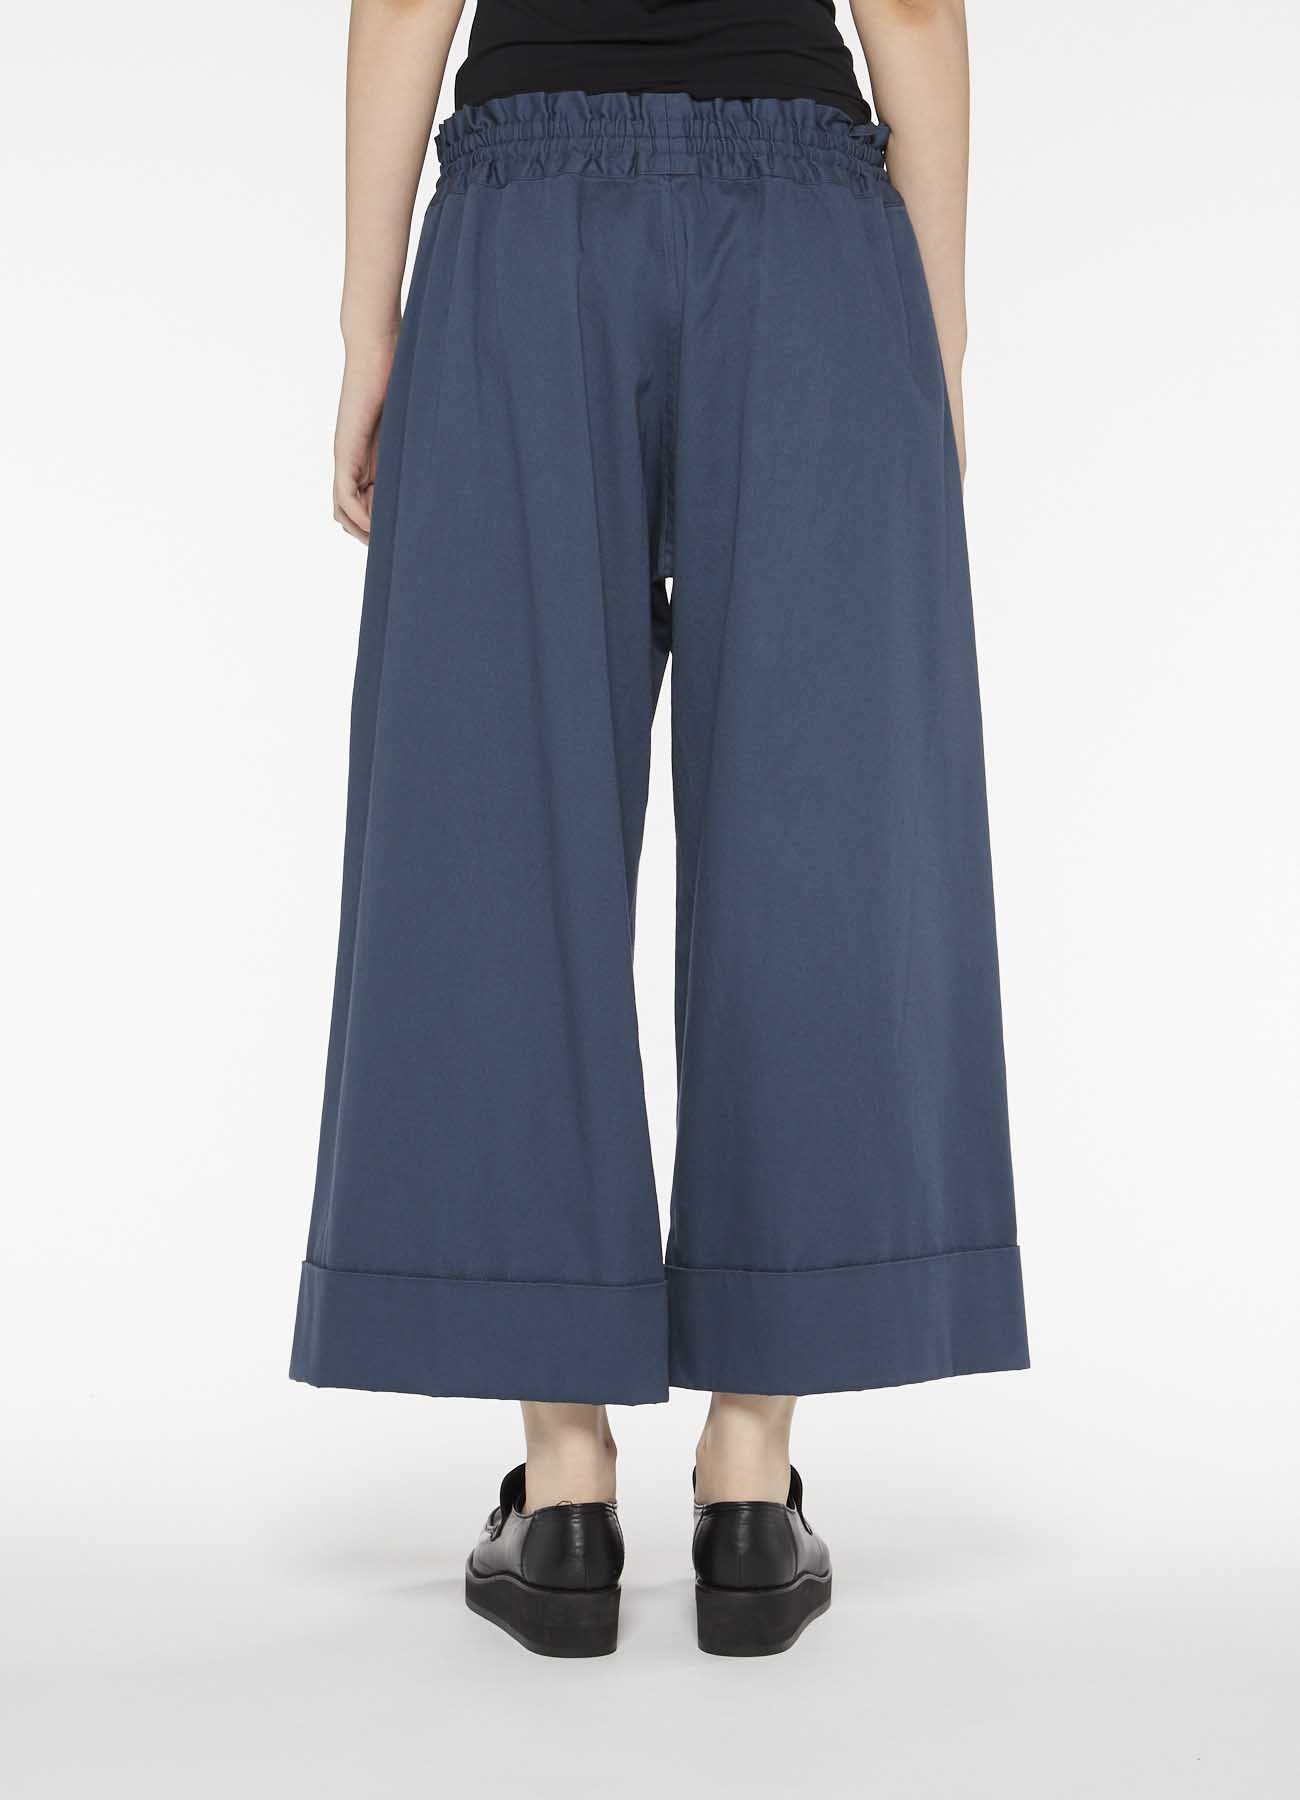 Y's-BORN PRODUCT MACKIN STRING PANTS